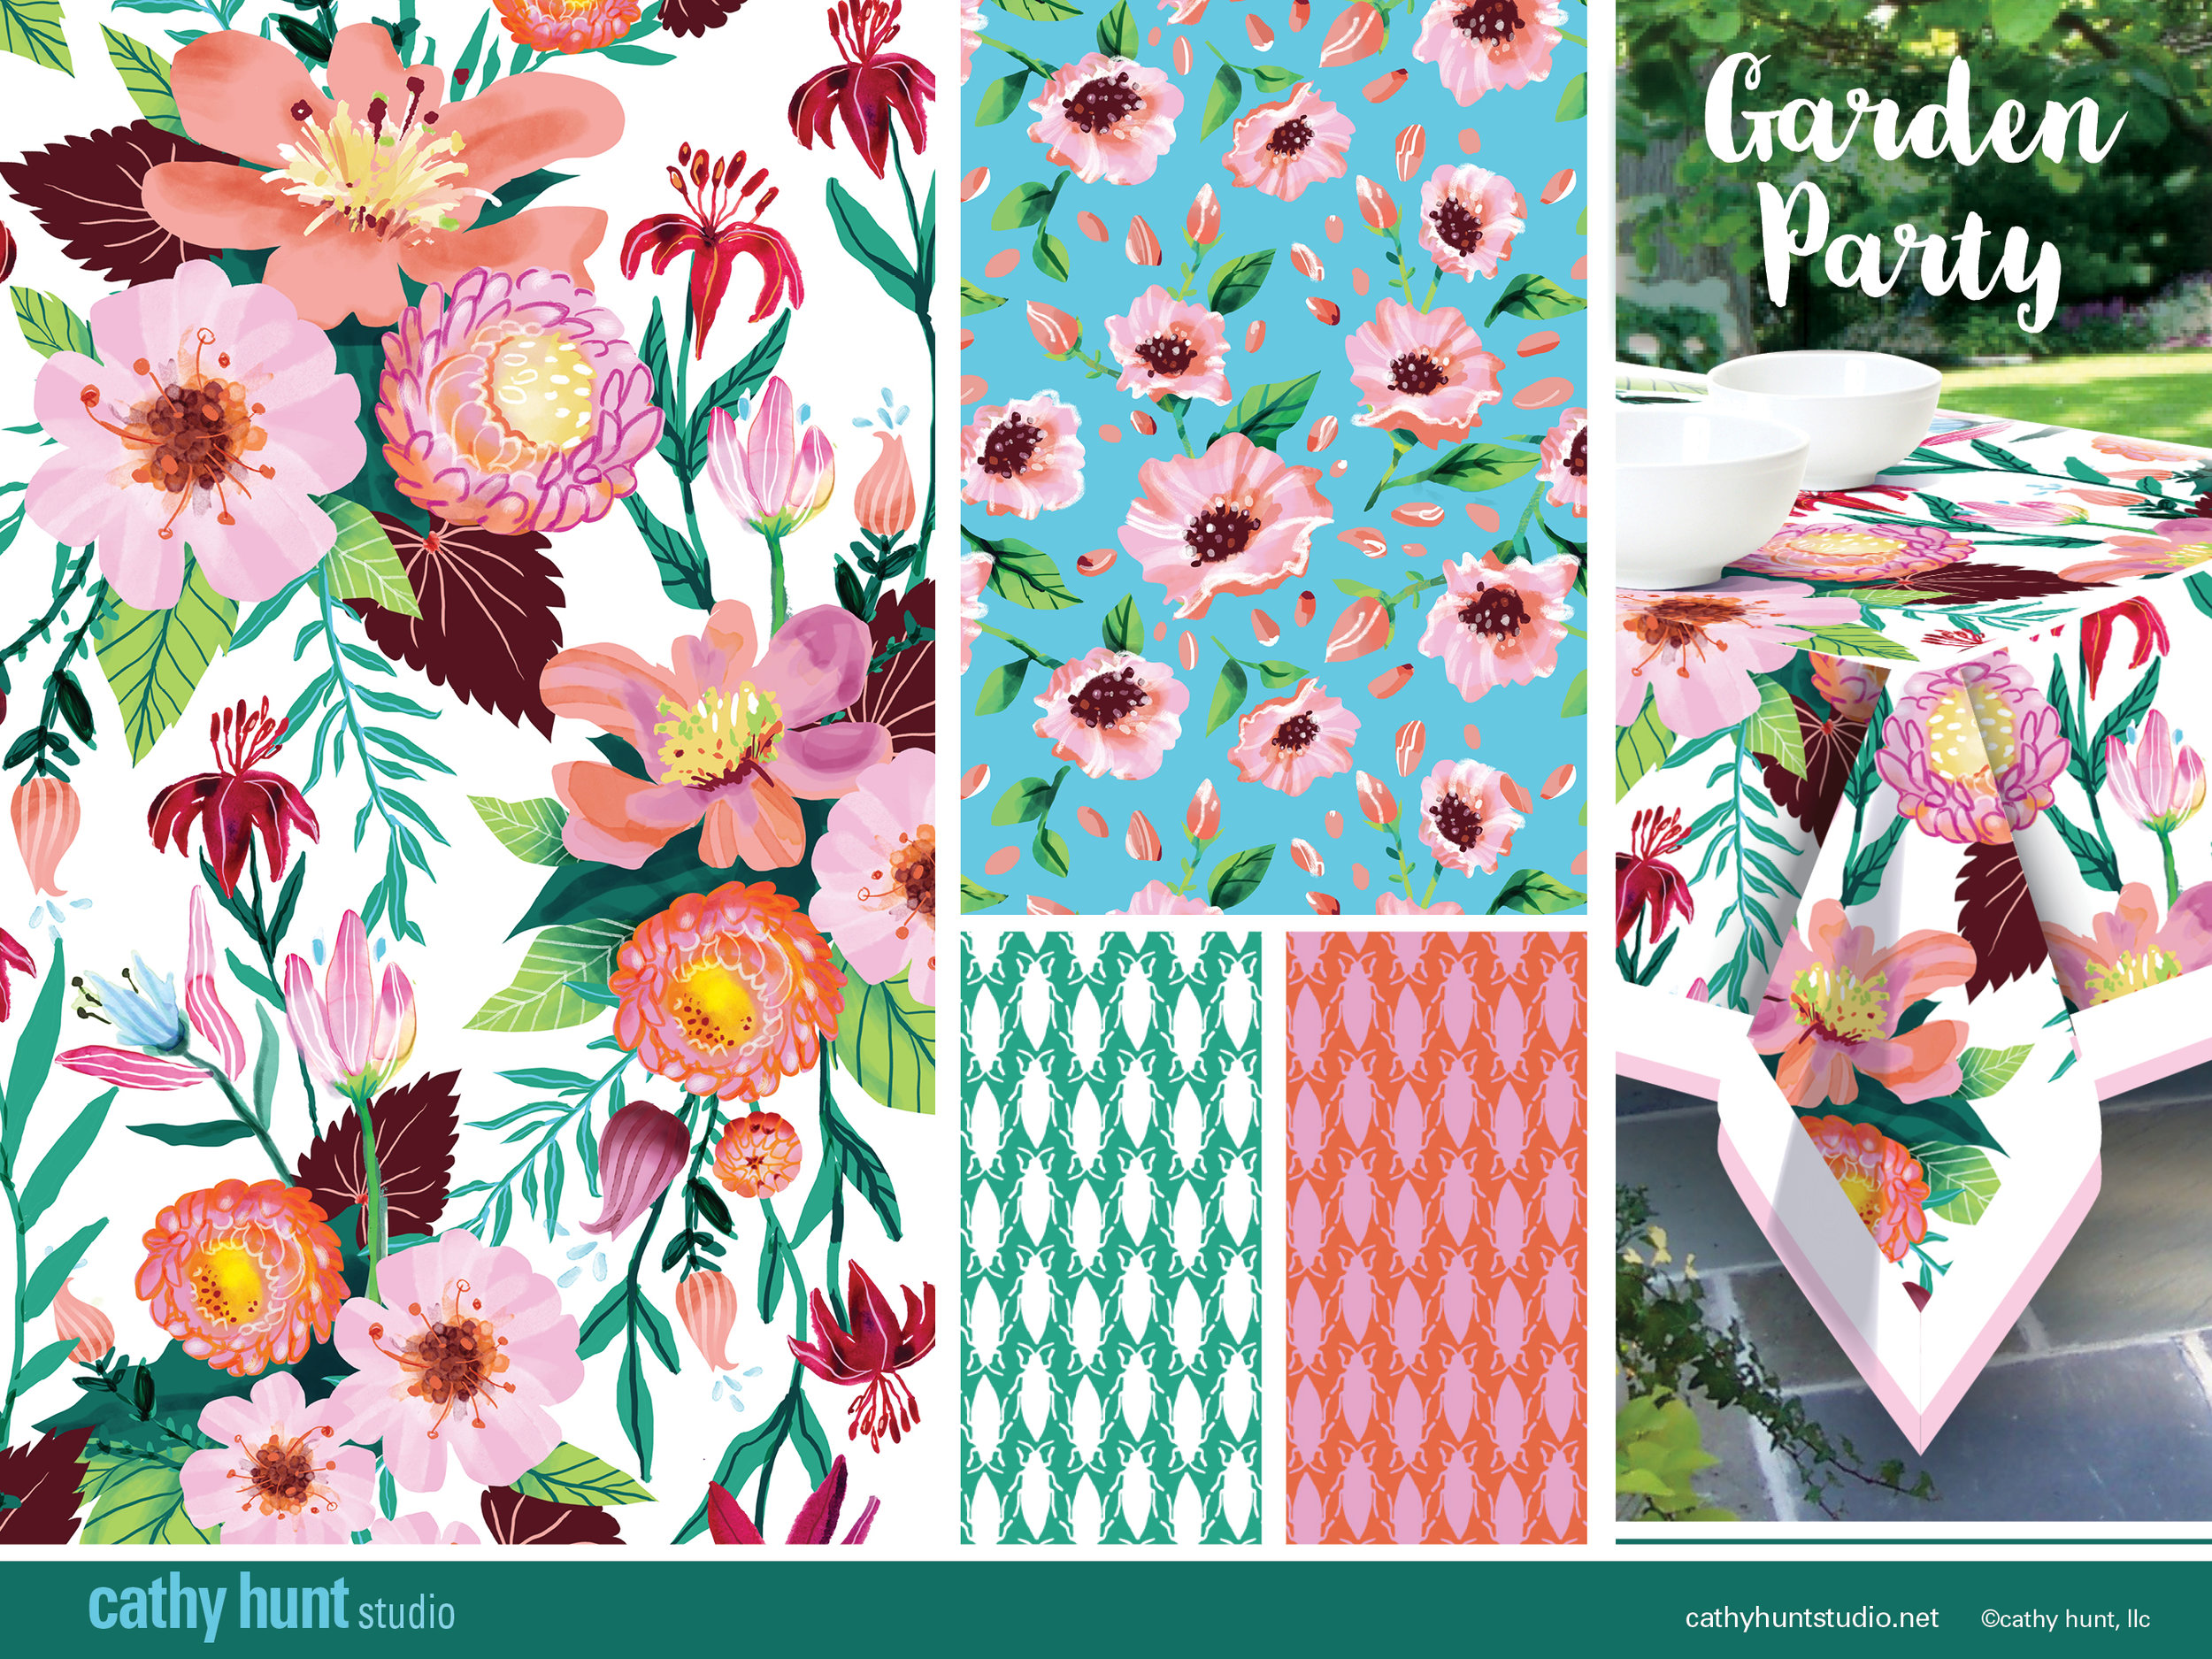 GardenParty_surfacedesign_cathyhunt2.jpg